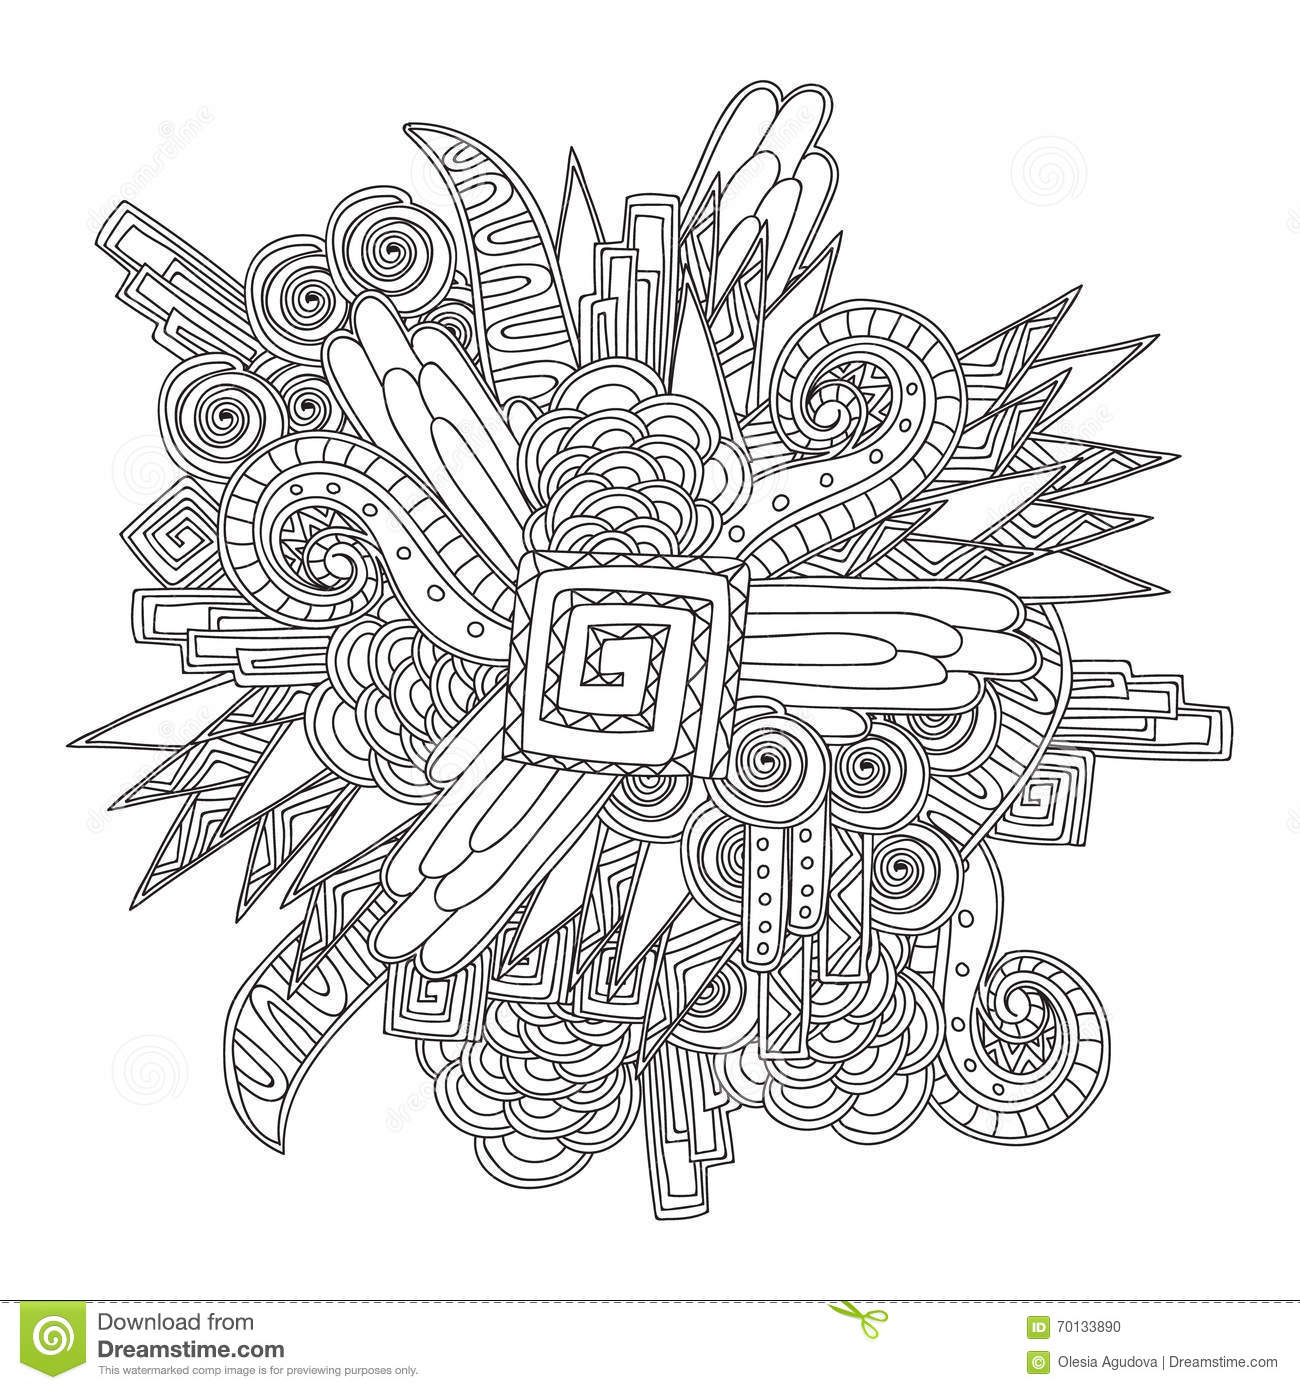 geometric pattern coloring pages - black and white geometric pattern coloring page for